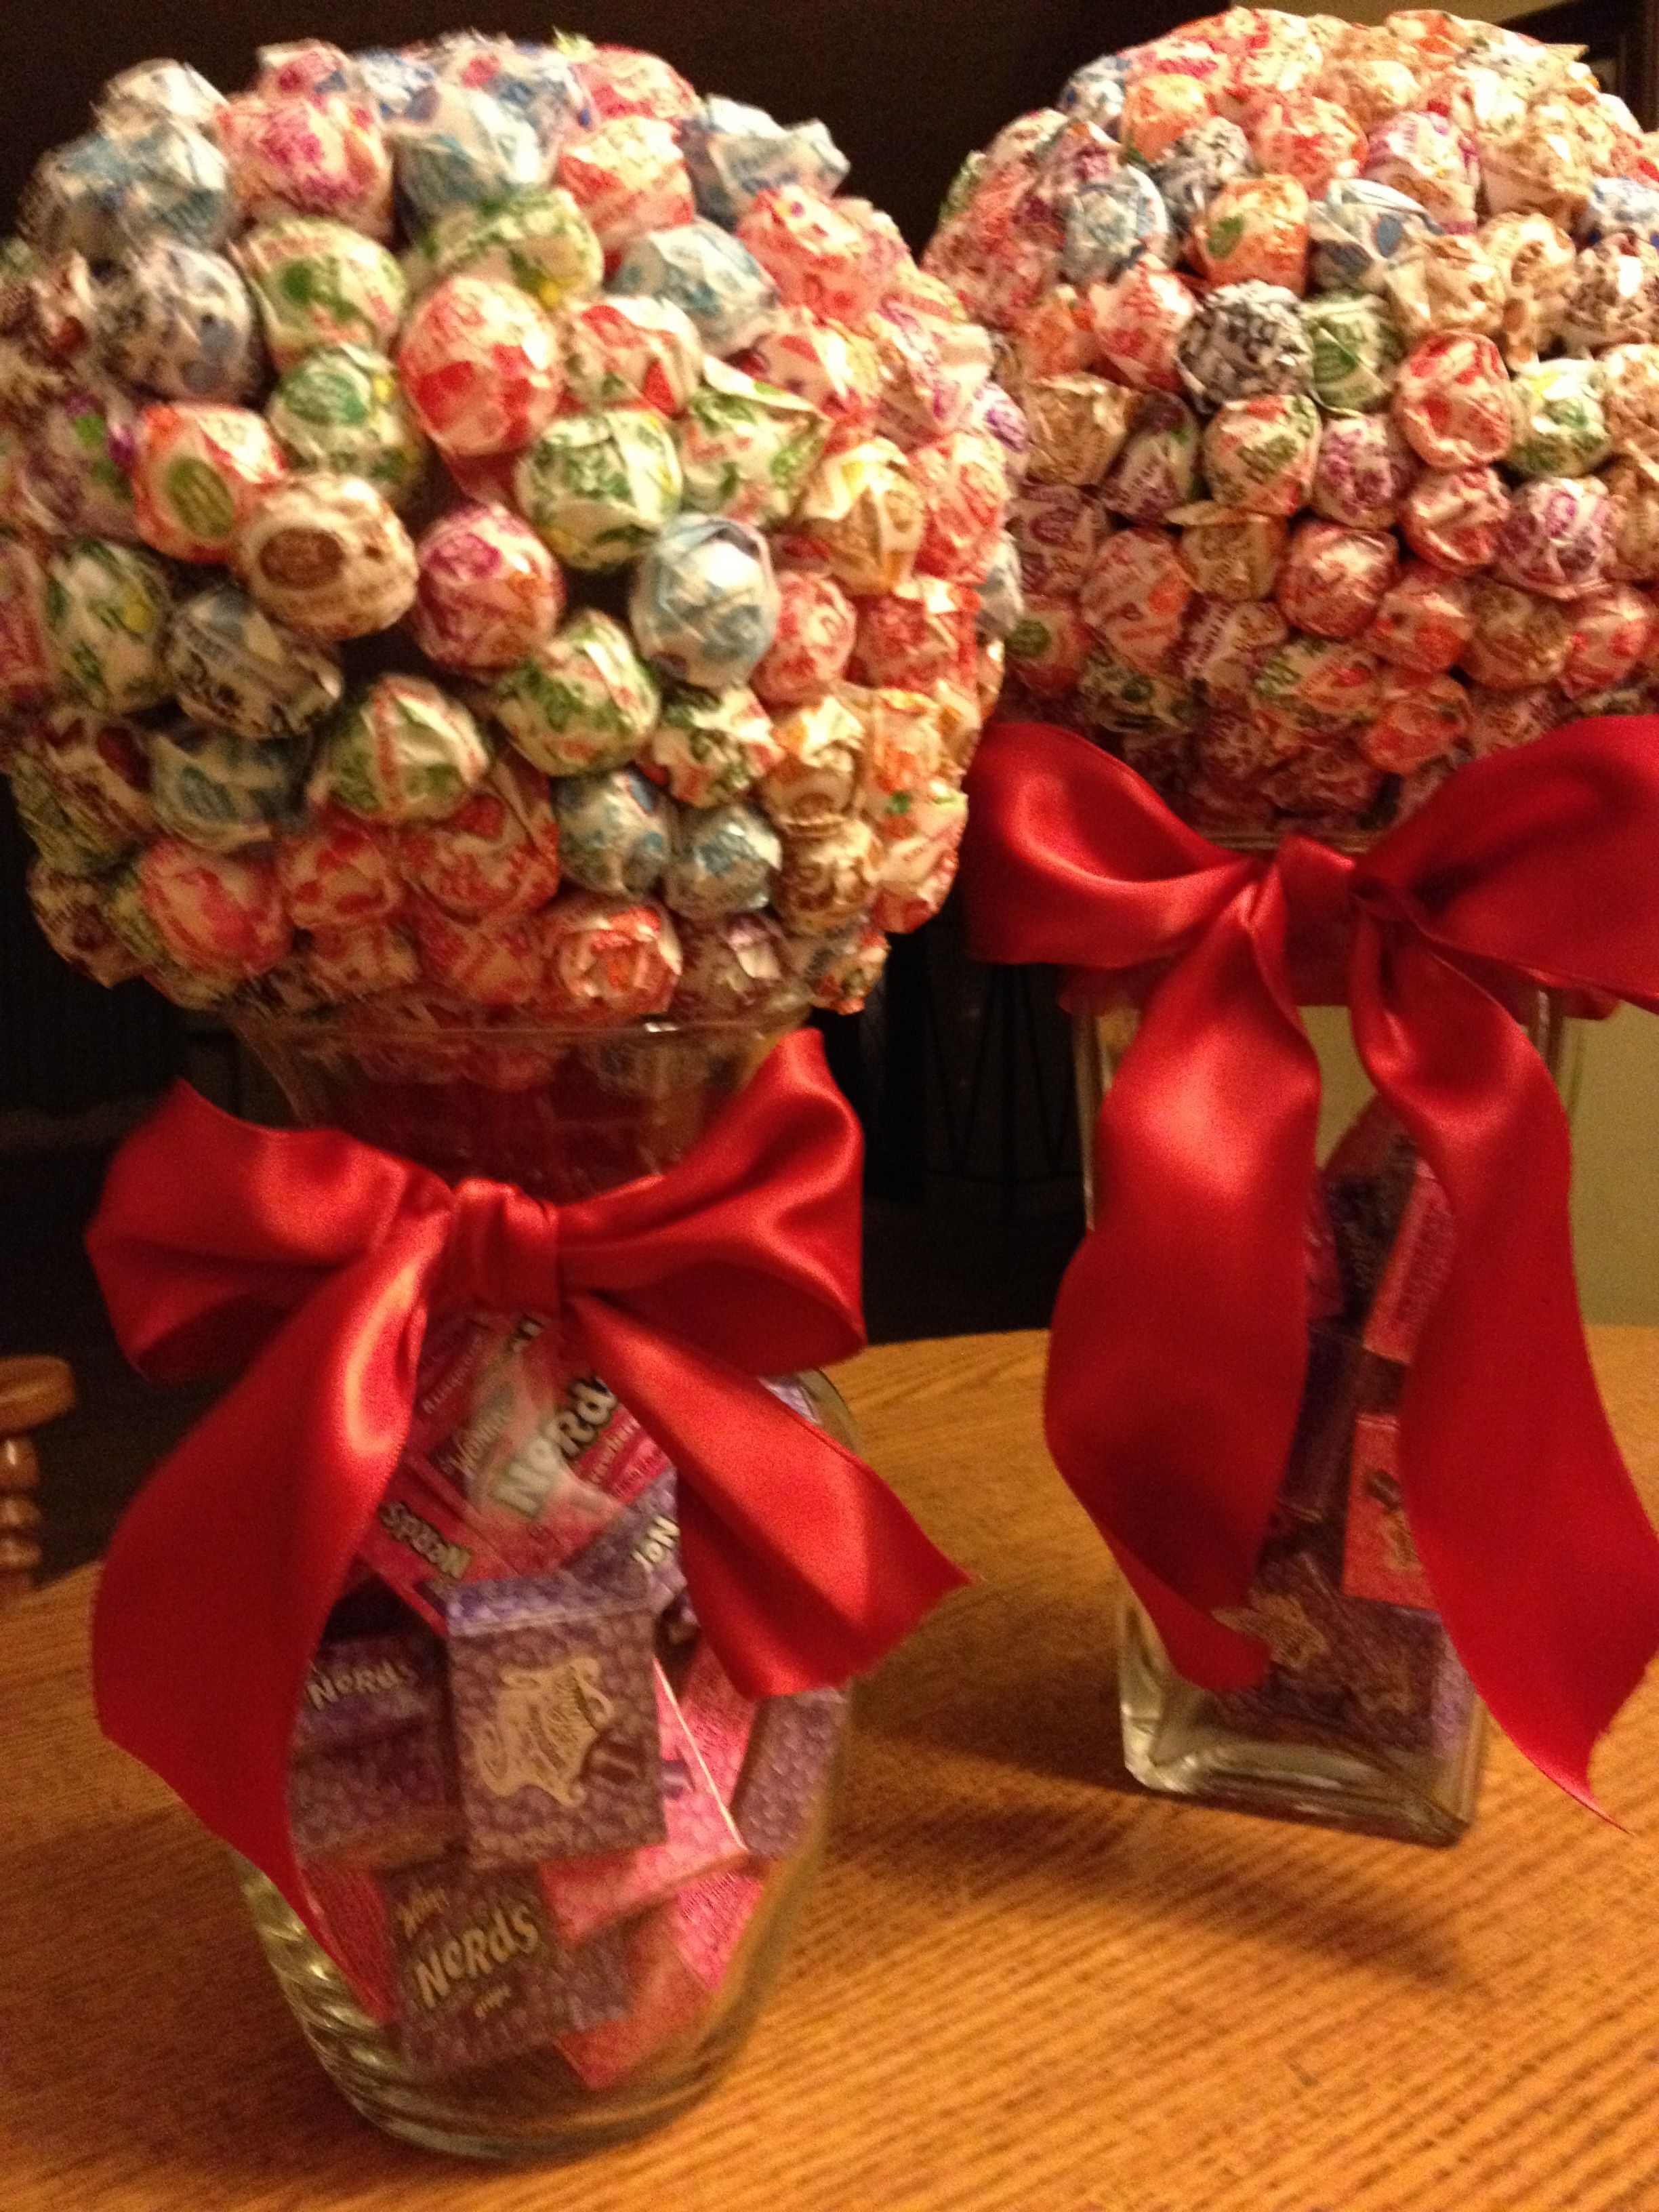 Decorations for candy land Christmas cookie exchange by Barbara Grollo